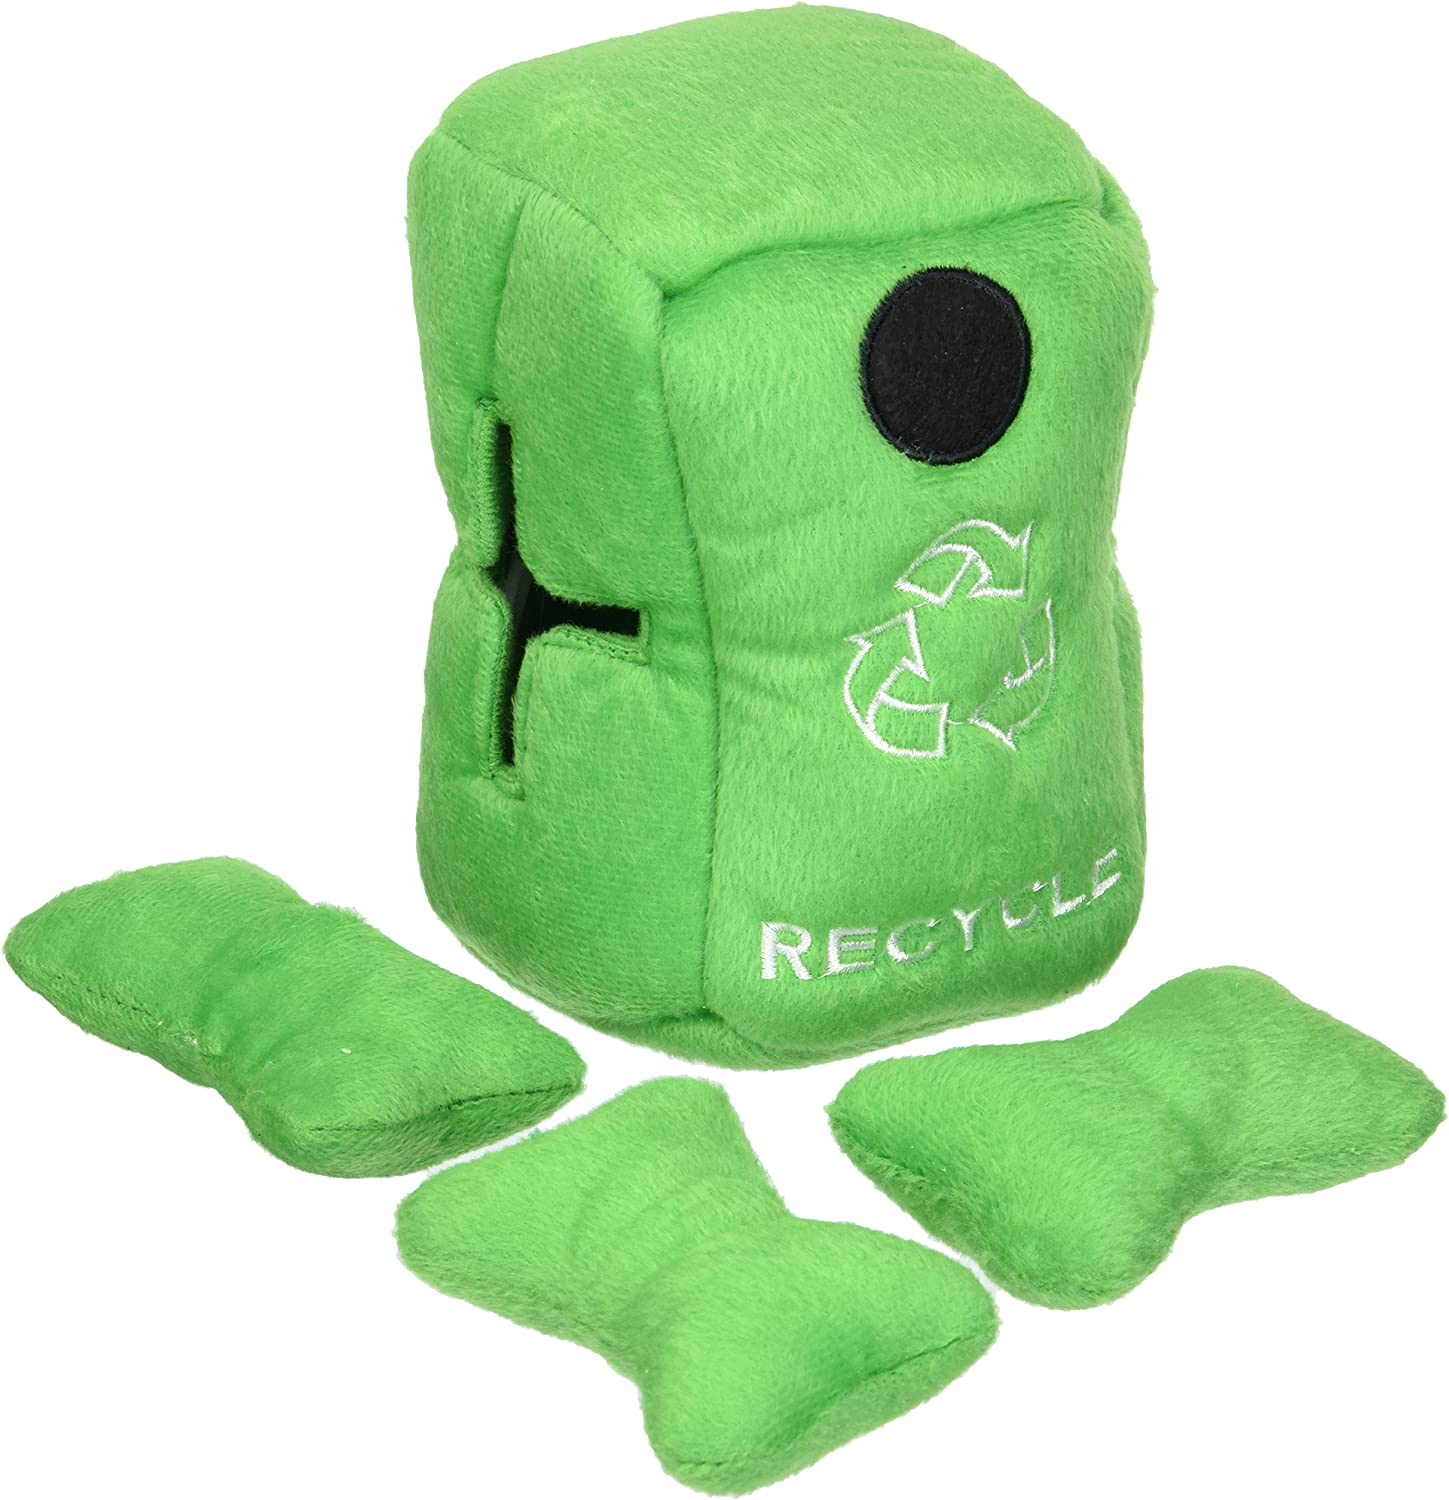 Digit' Stuffable Recycle Bin Plush Toy, Interactive Hide and Seek for Small Dogs, 4piece  6  Recycle Bin